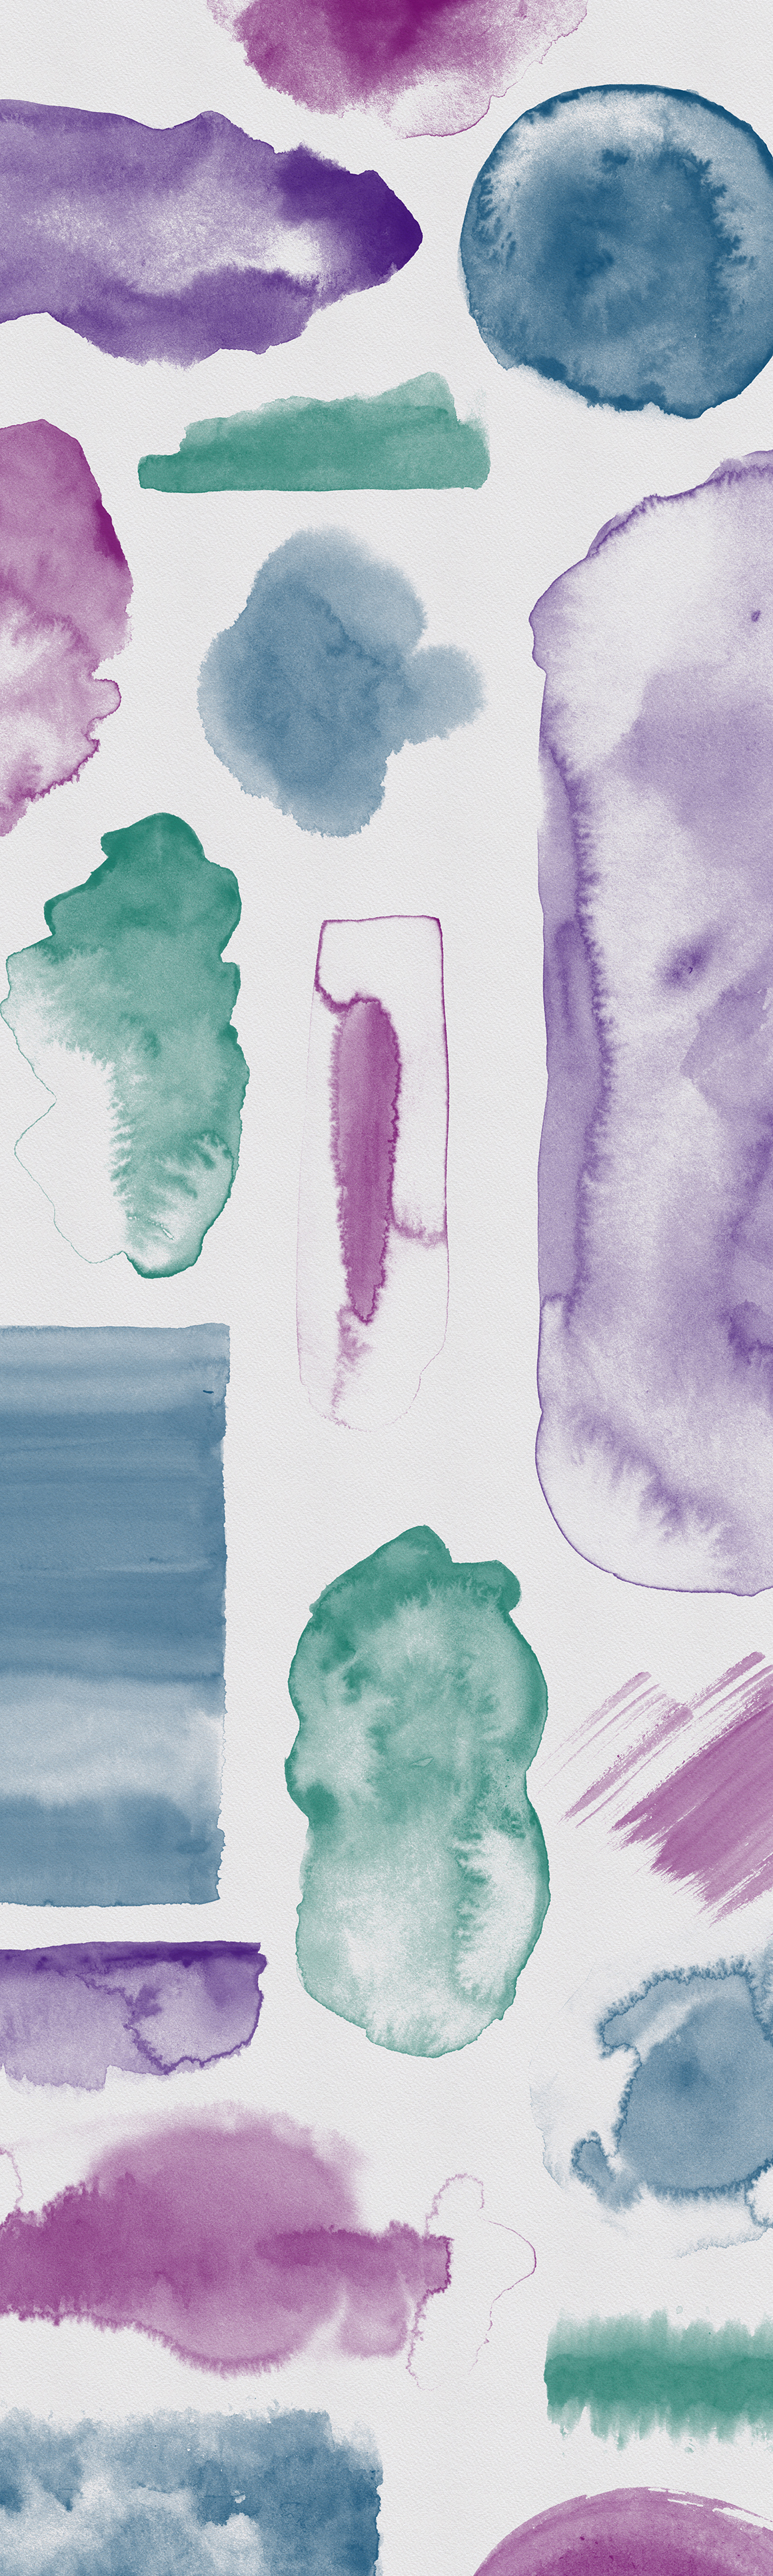 102 Watercolor Stamps For Procreate